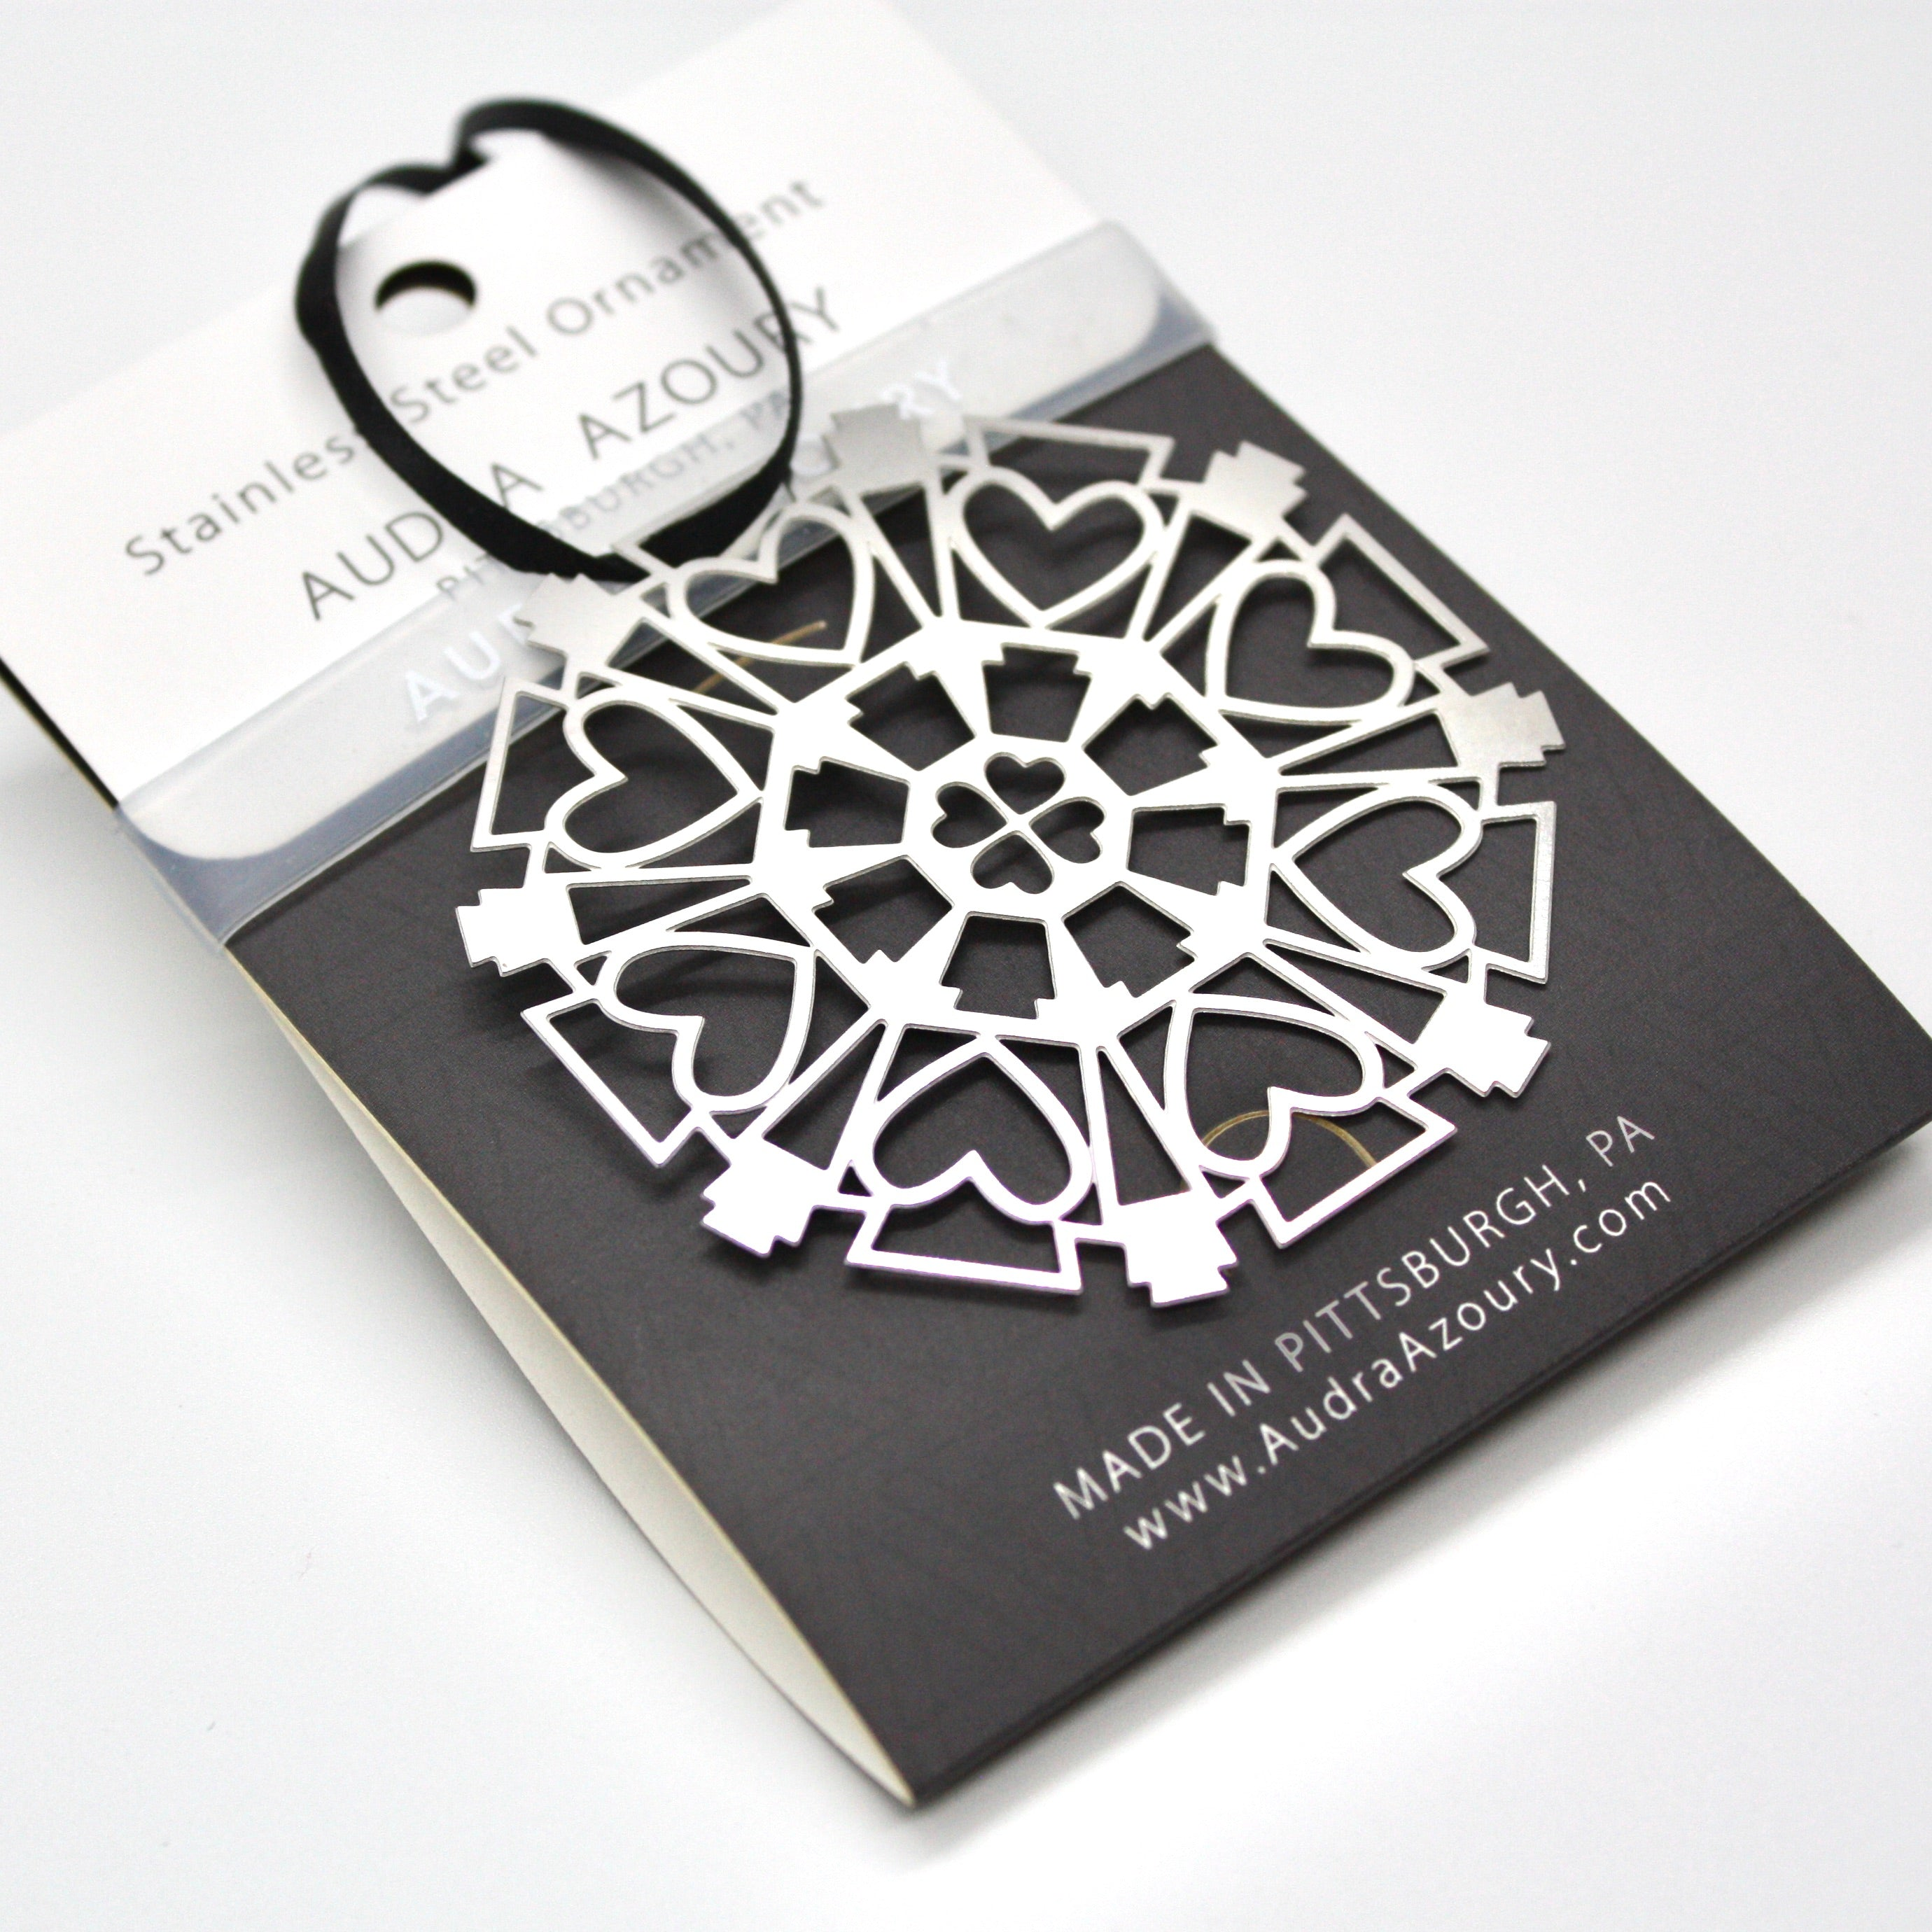 Keystone & Hearts Snowflake Ornament by Pittsburgh Designer Audra Azoury